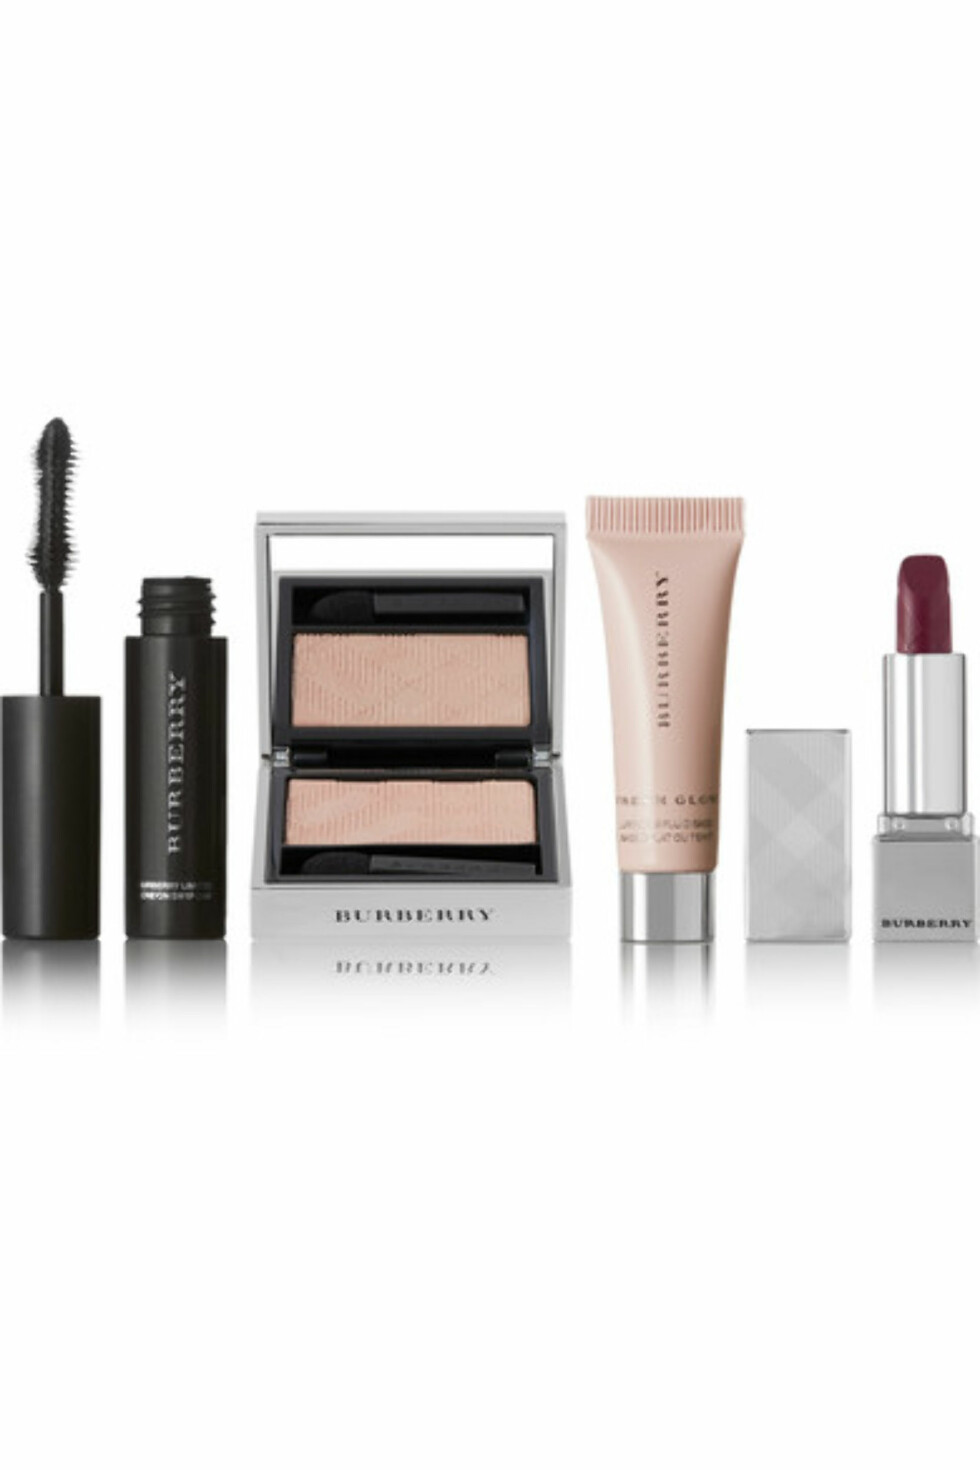 Beauty box fra Burberry |360,-| https://www.net-a-porter.com/no/en/product/1015471/burberry_beauty/festive-beauty-box